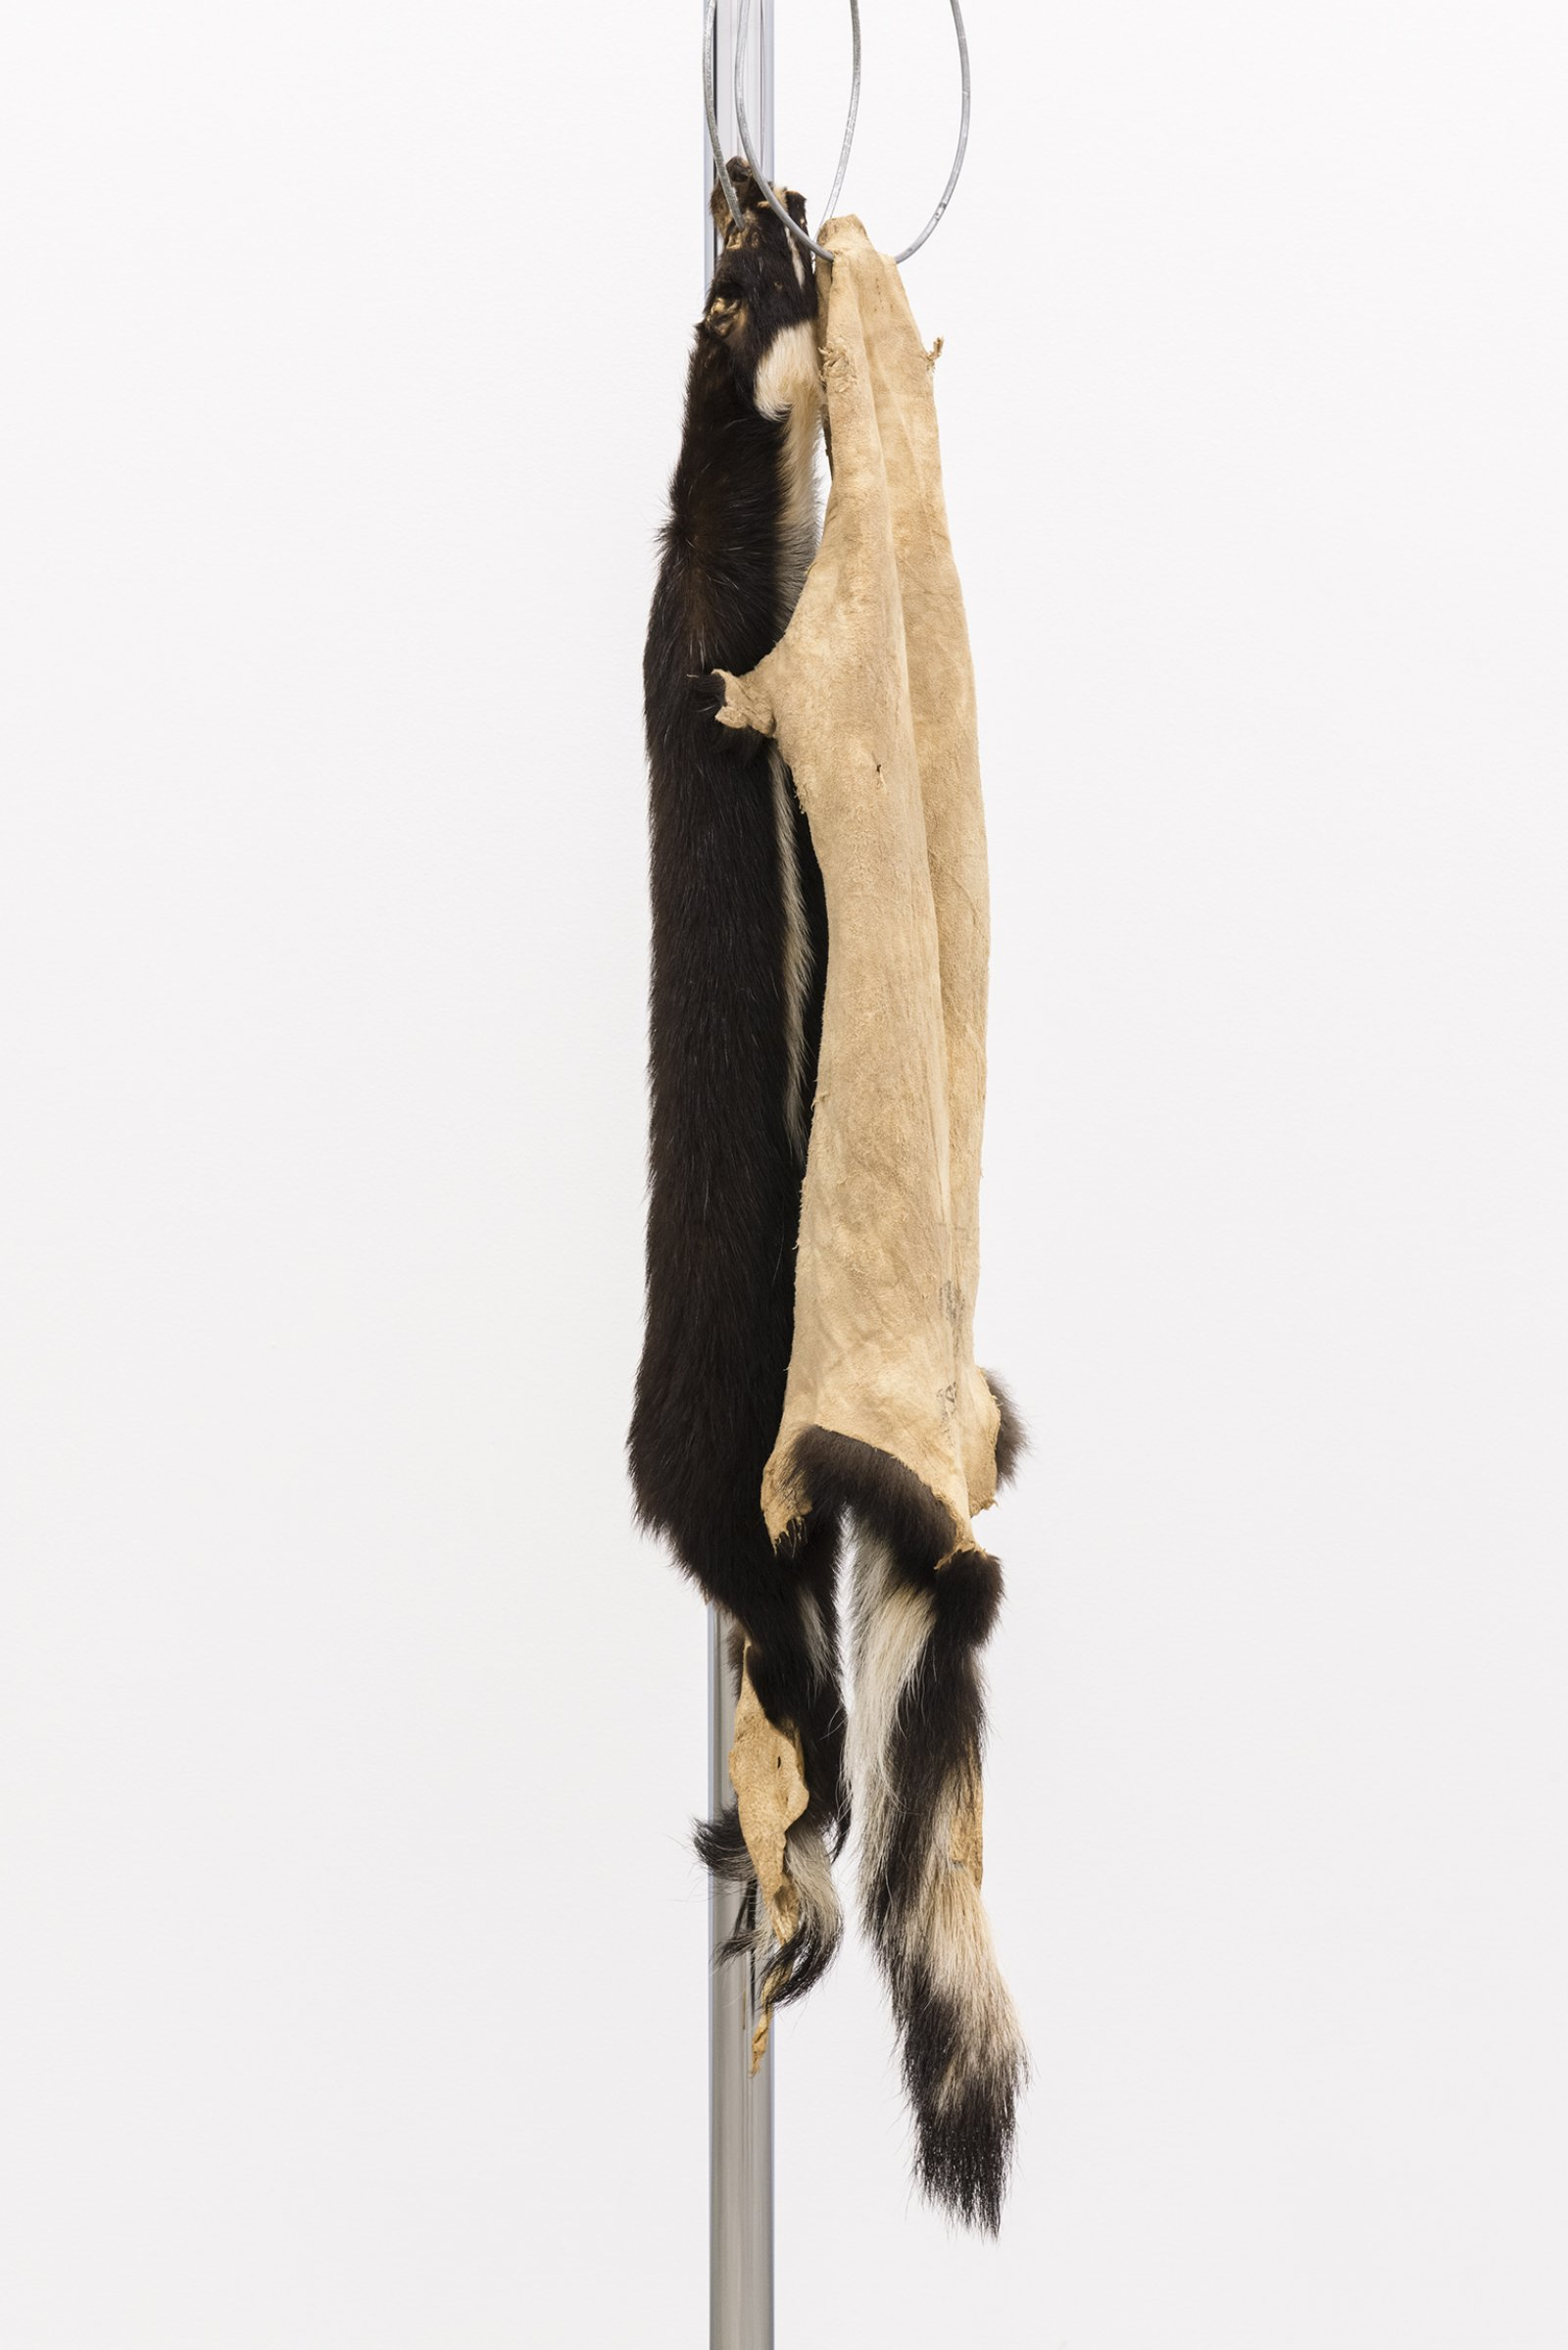 Duane Linklater, The marks left behind​ (detail), 2014, skunk furs, garment rack, hangers, 66 x 60 x 20 in. (168 x 151 x 52 cm) by Duane Linklater